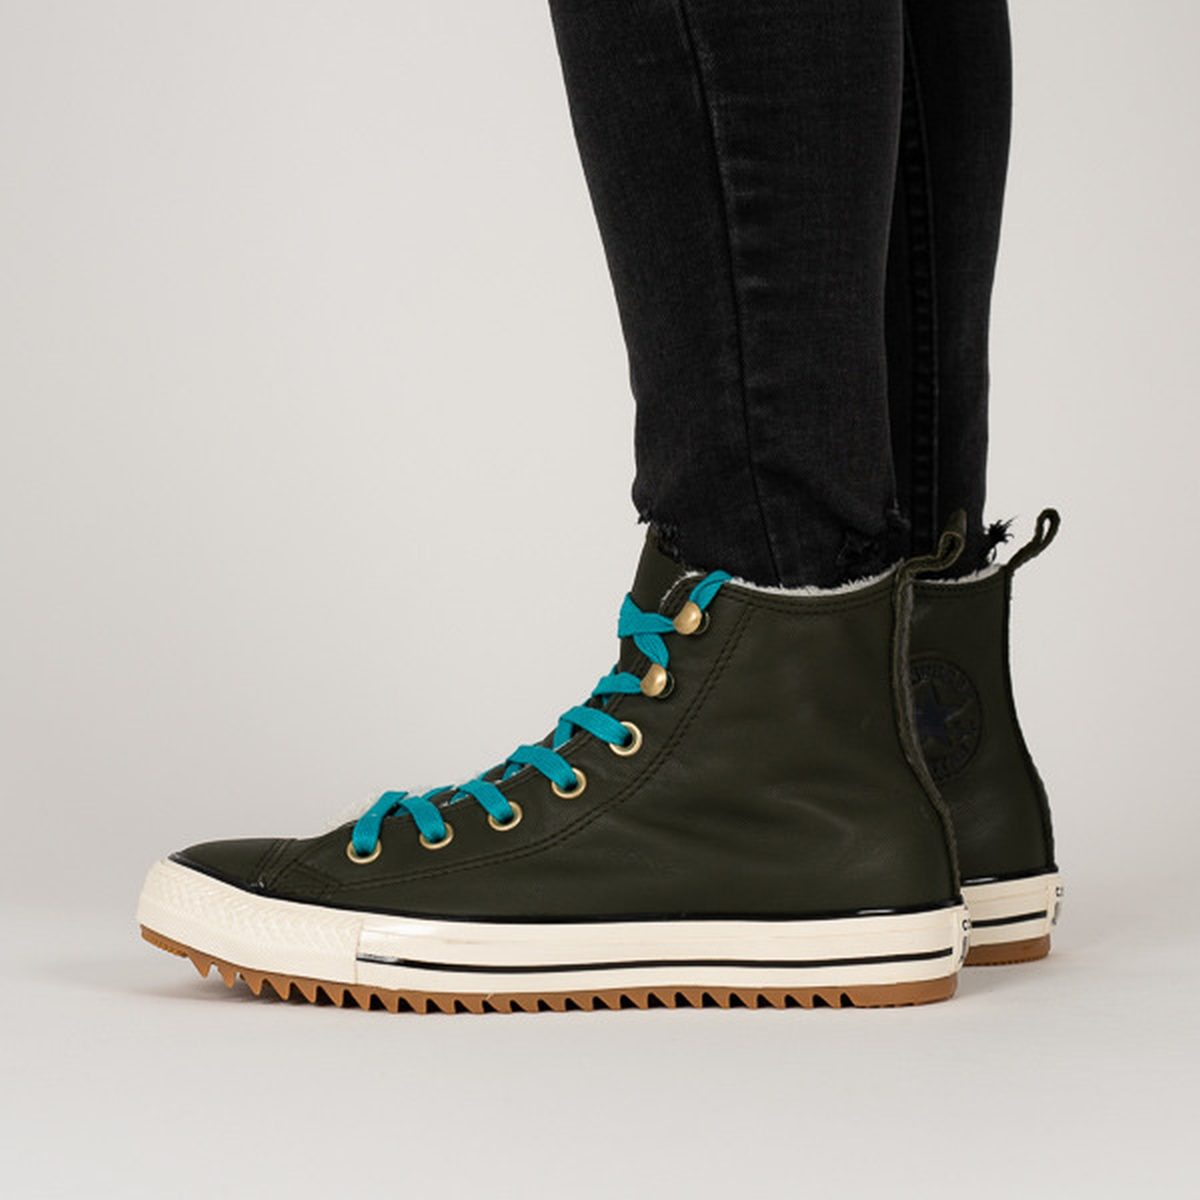 Converse All Star Hiker Boot 162478c 2